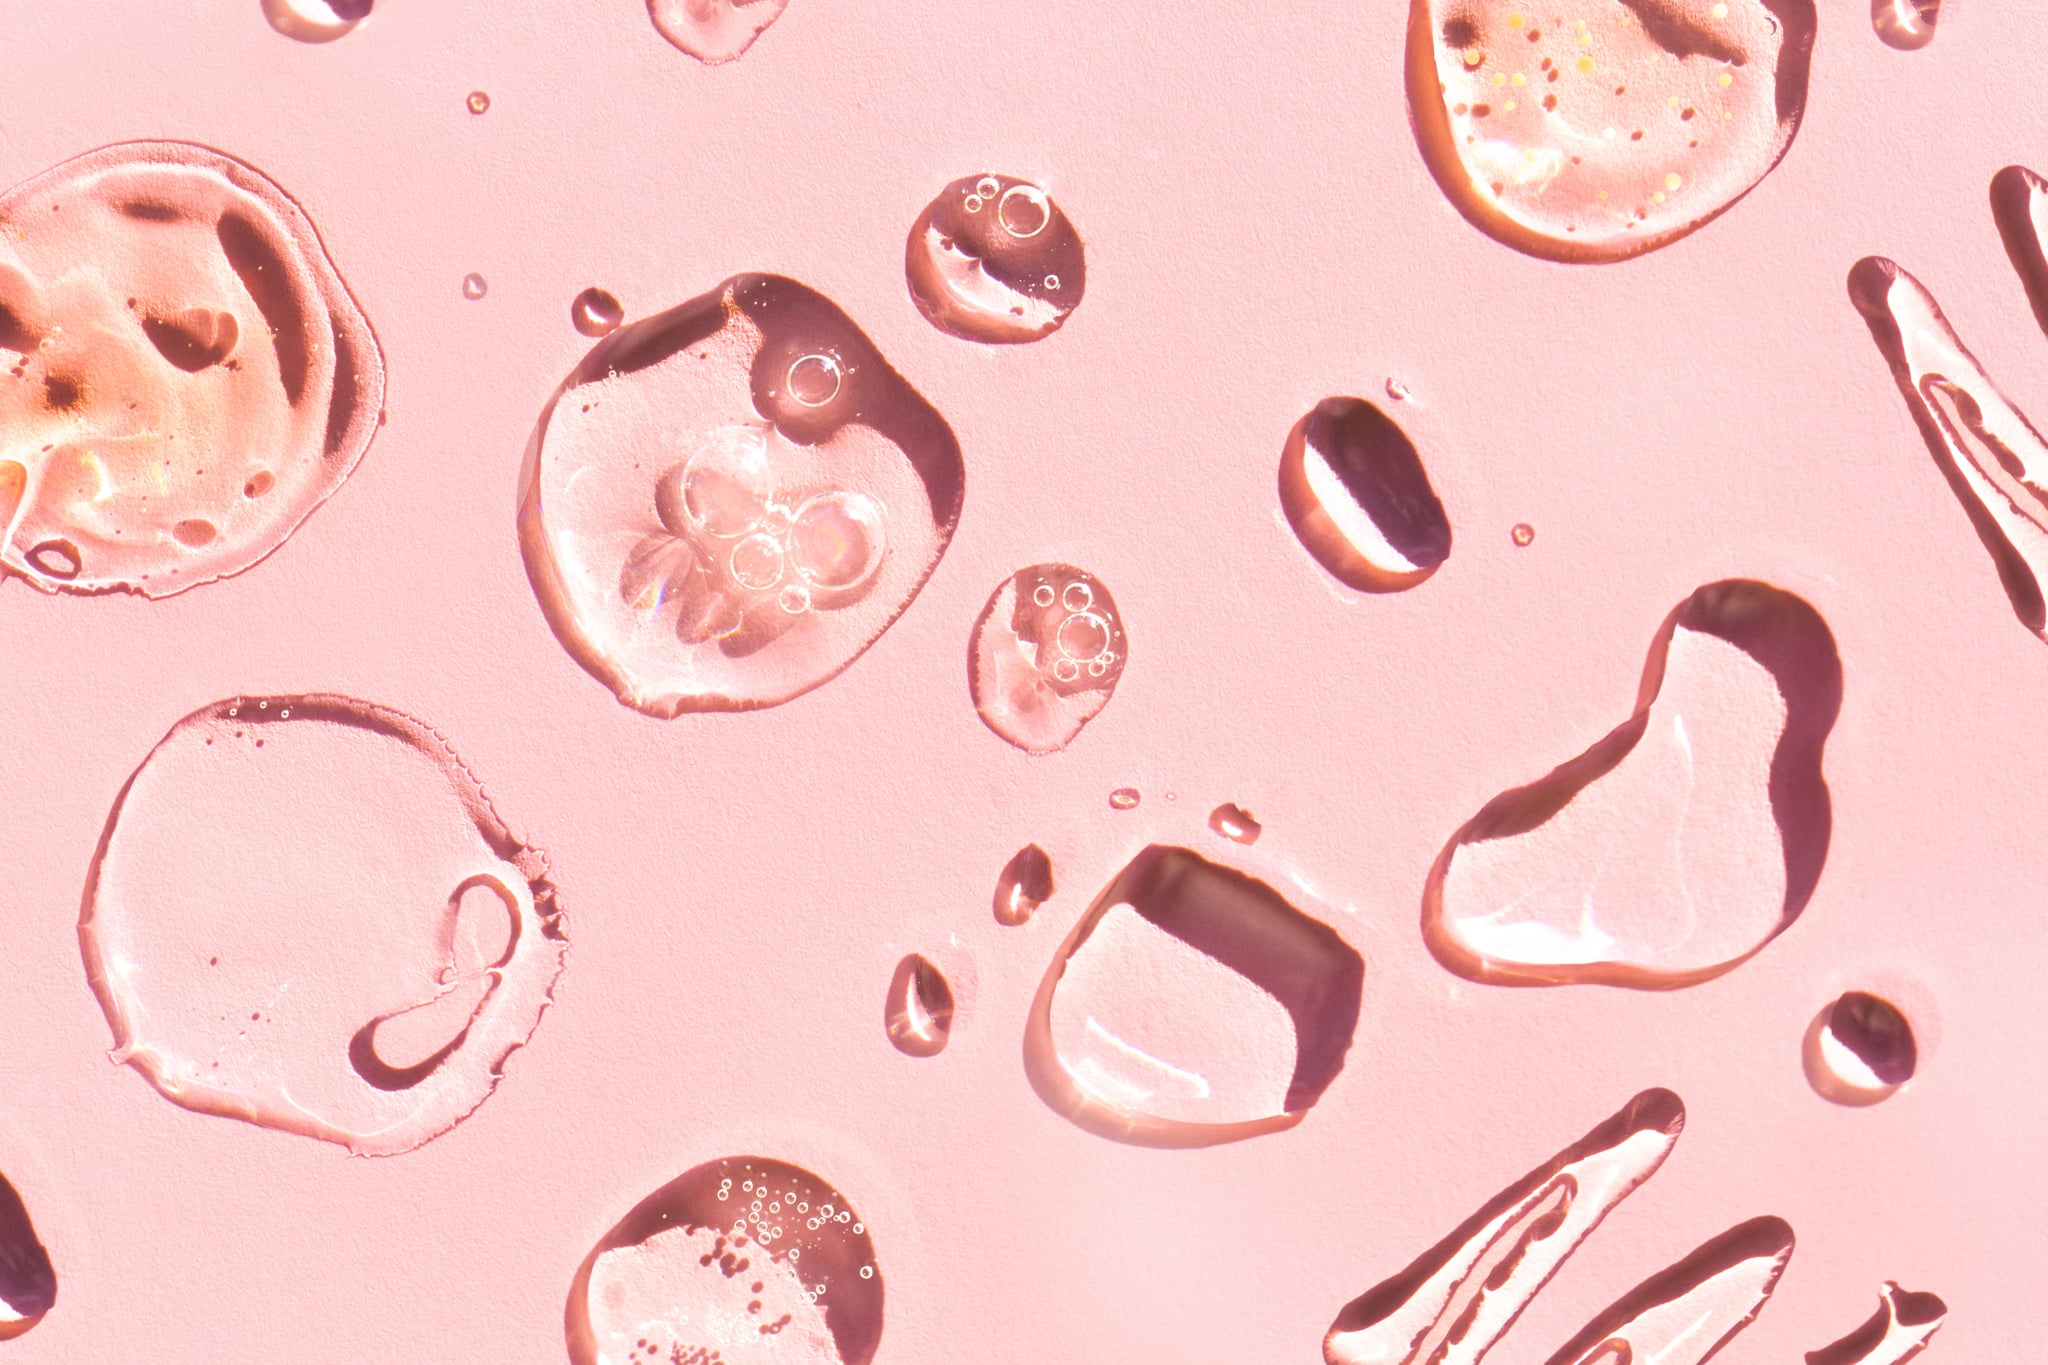 Top view of blots and smears of various lotions and gels spread on pink background. Beauty product of the year